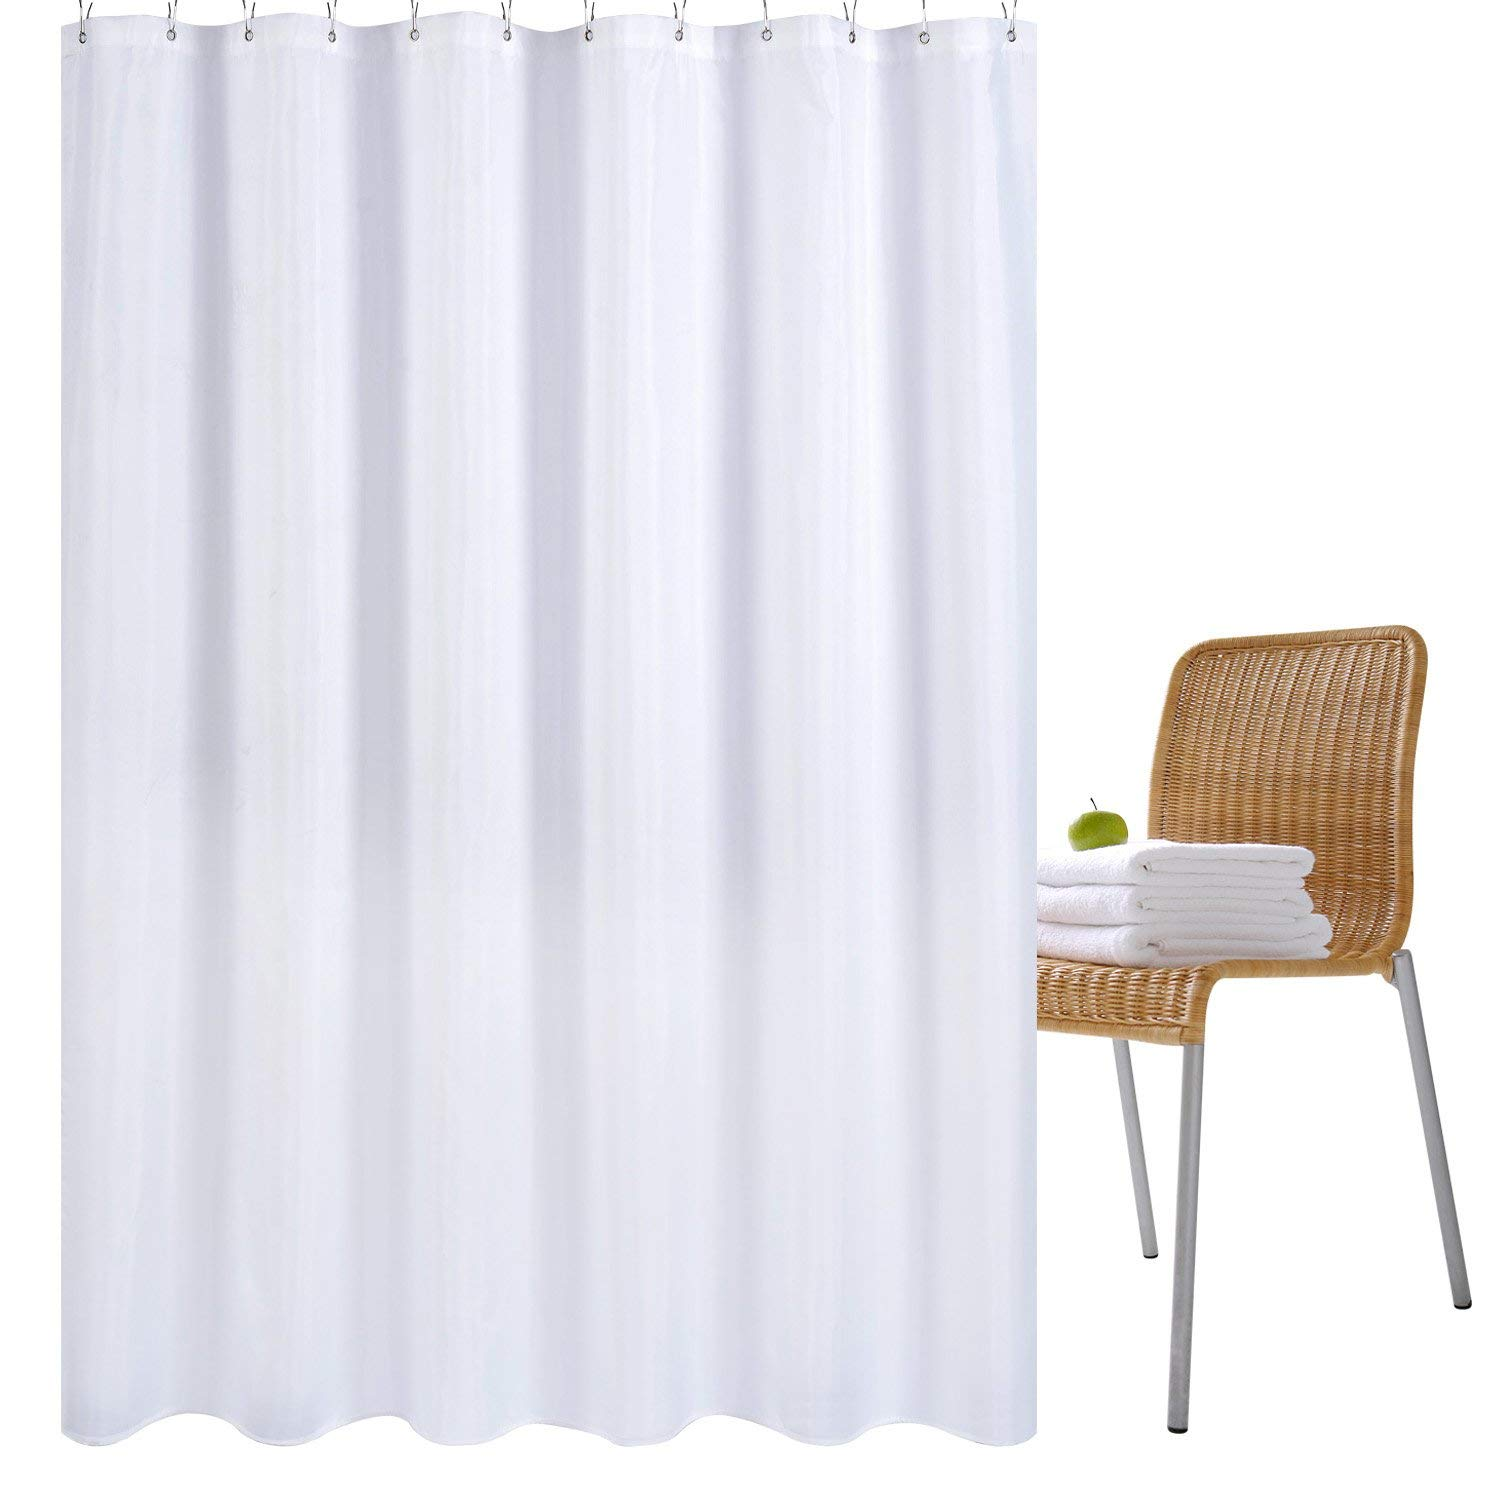 Exceptionnel Wimaha Water Repellent Fabric Shower Curtain Liner Mildew Resistant Machine  Washable Bathroom Shower Curtains